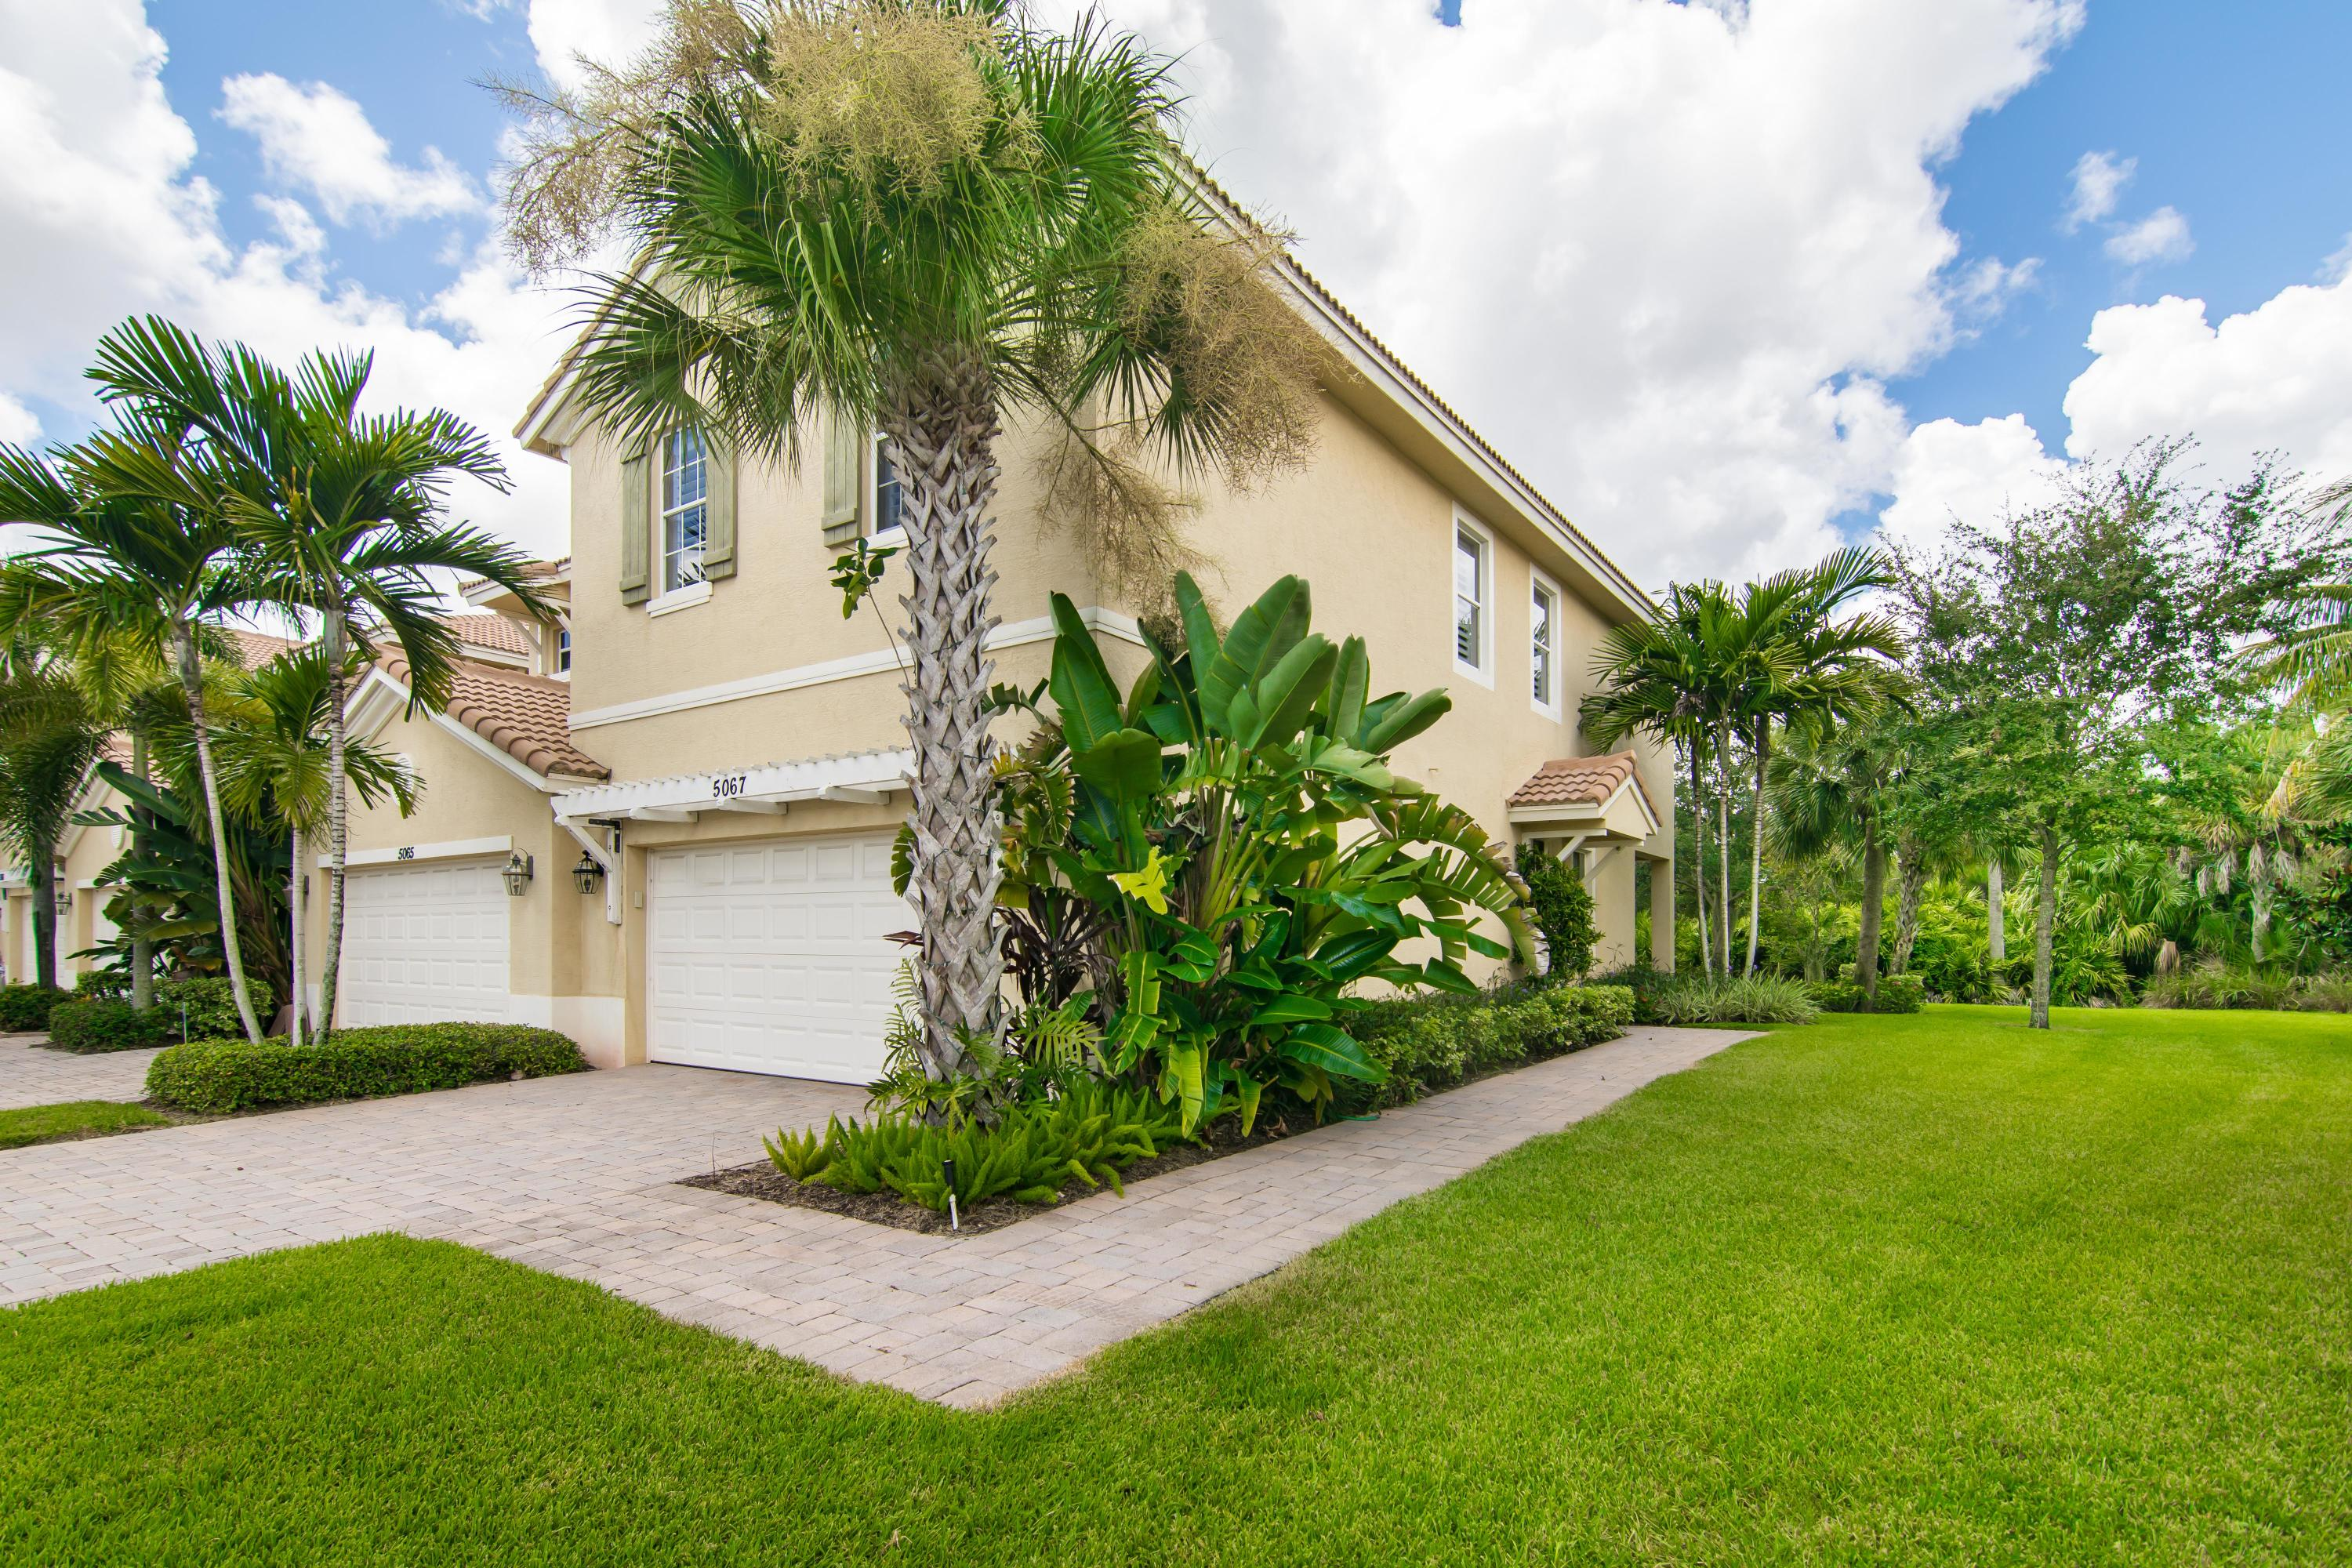 Details for 5067 Dulce Court, Palm Beach Gardens, FL 33418